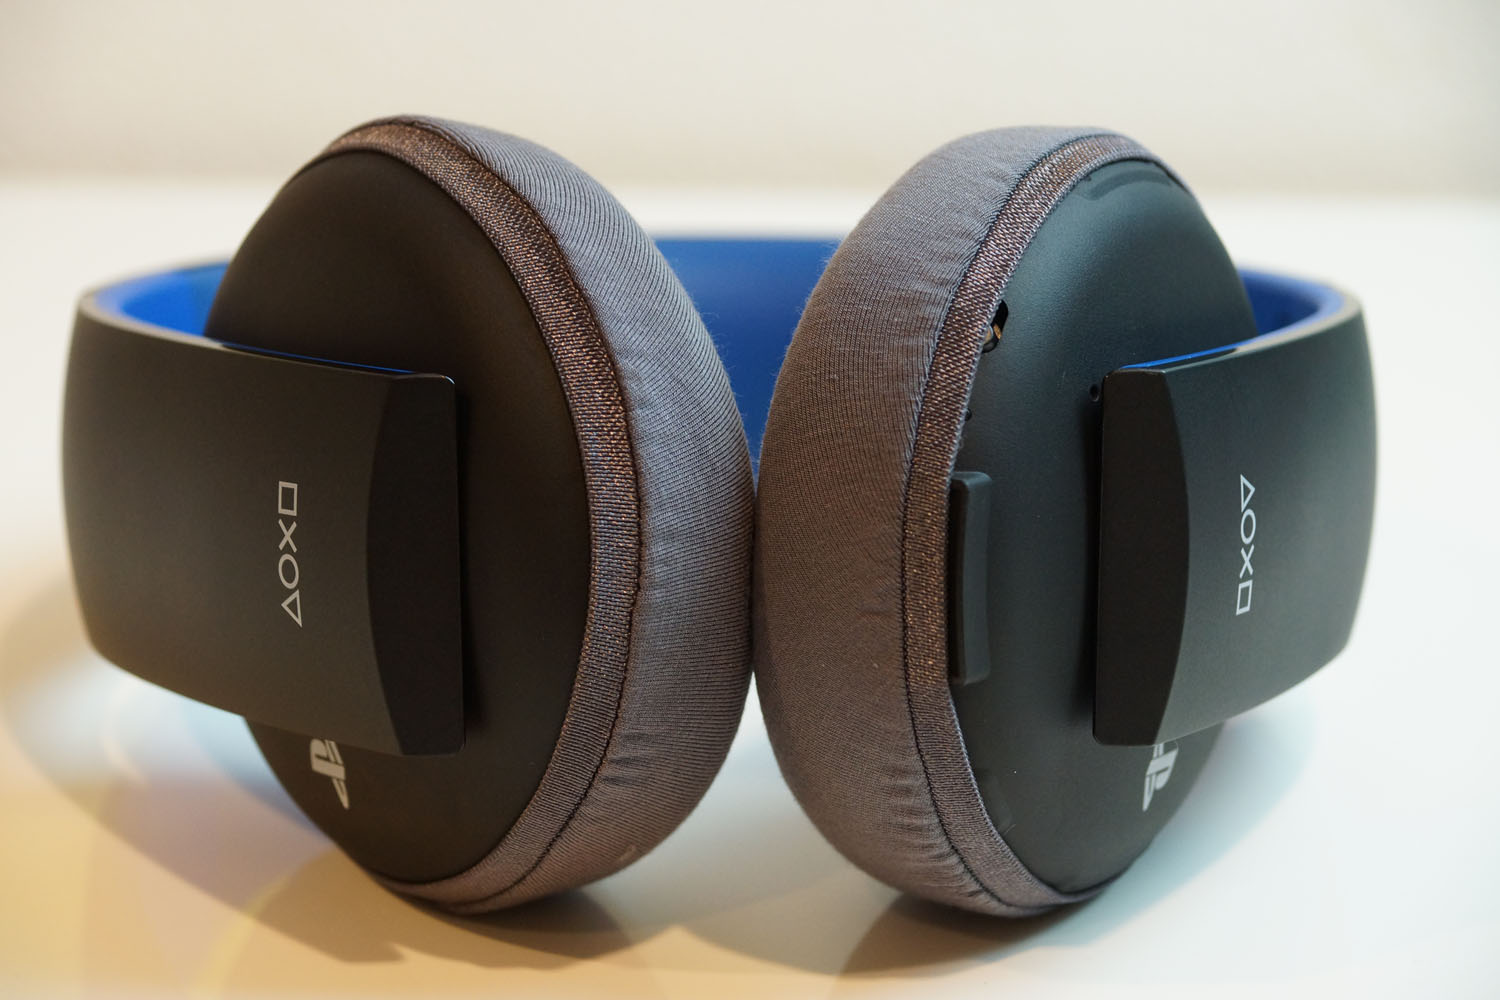 SONY CUHJ-15001 ear pads compatible with mimimamo